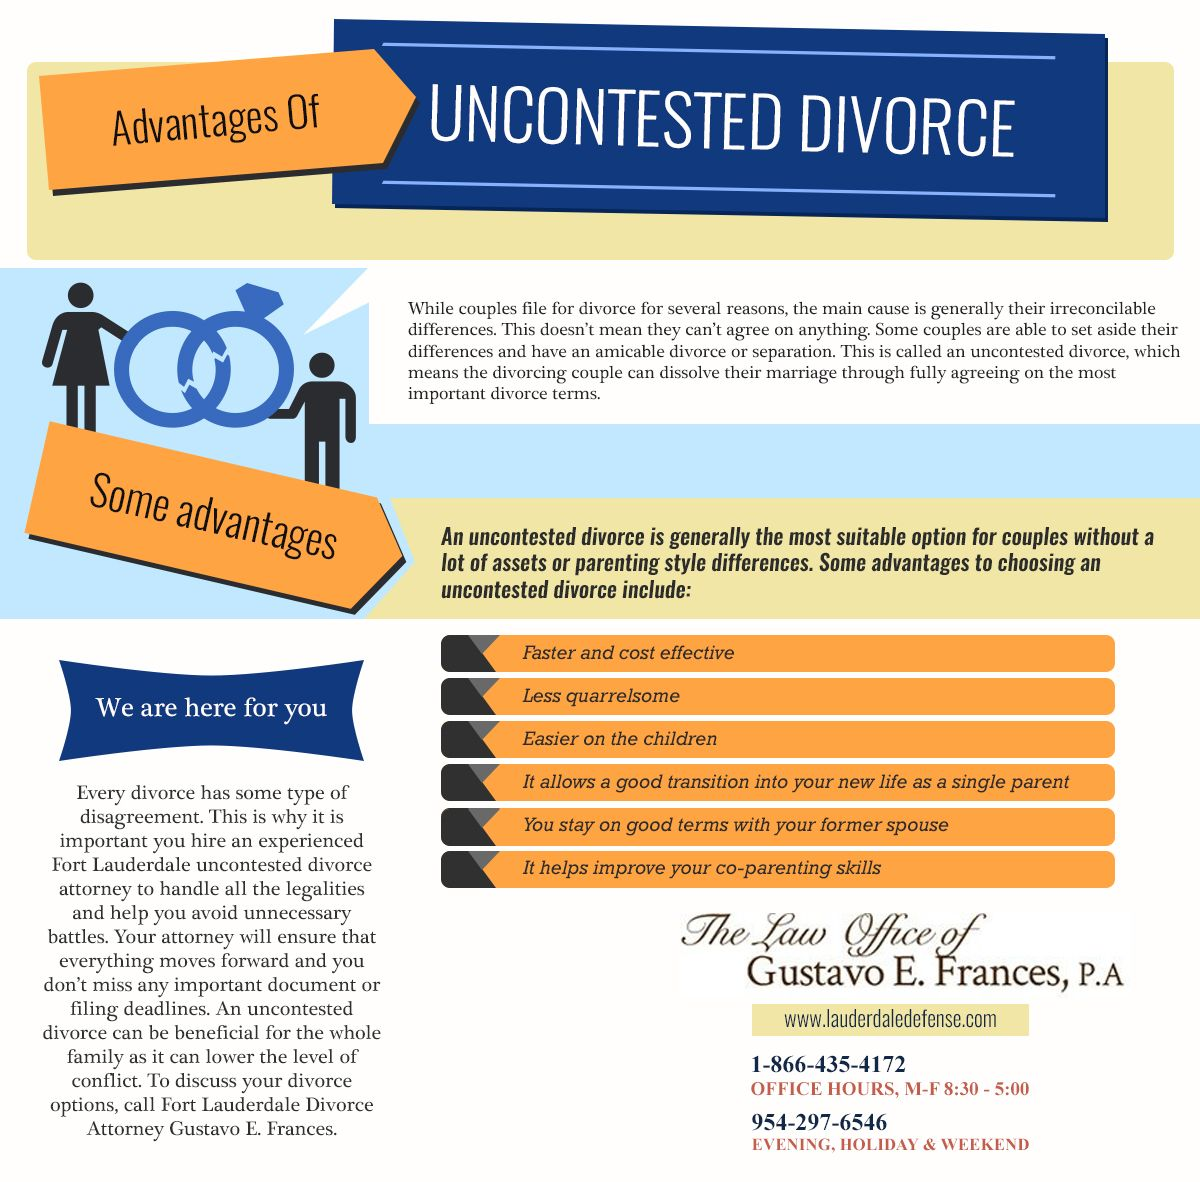 Every divorce has some type of disagreement. This is why